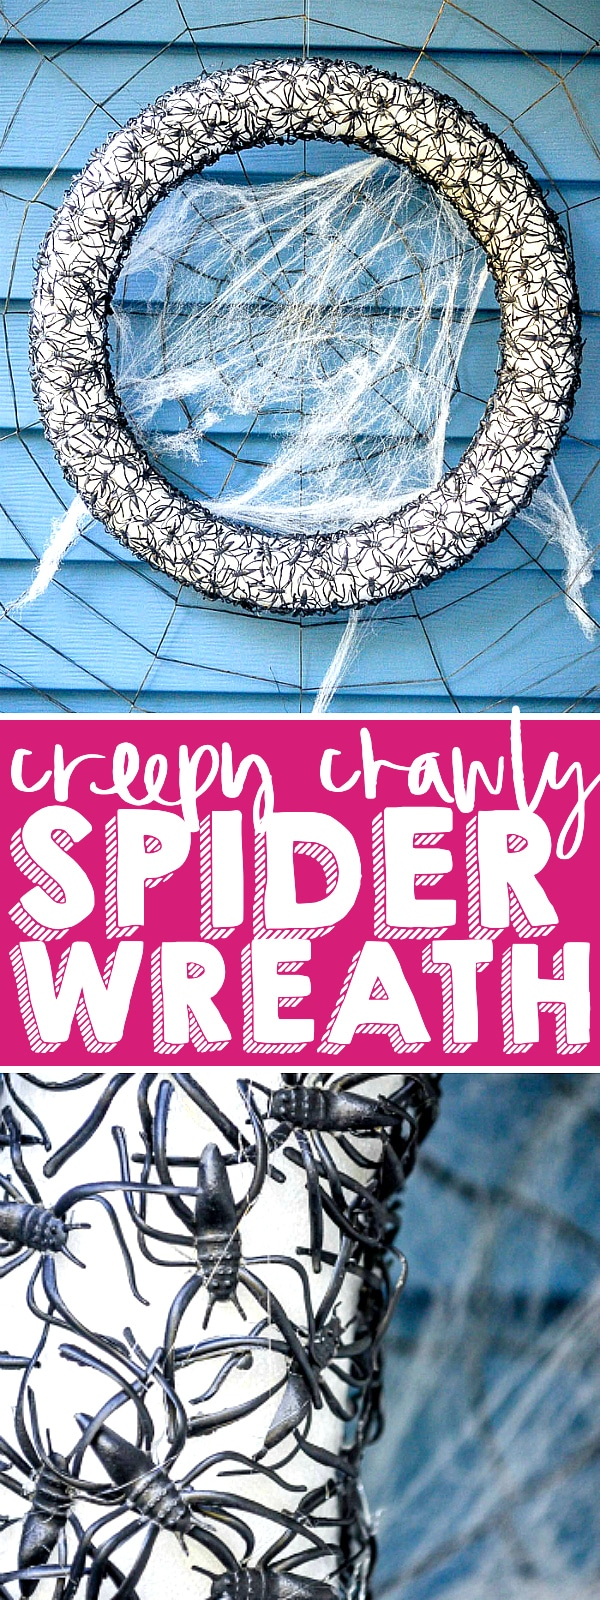 Create a creepy crawly Spider Wreath for your DIY Halloween decor! Made with a couple inexpensive products and a lot of hot glue, it's an easy Halloween Wreath your trick or treaters will love! | THE LOVE NERDS #HALLOWEENDECOR #DIYWREATH